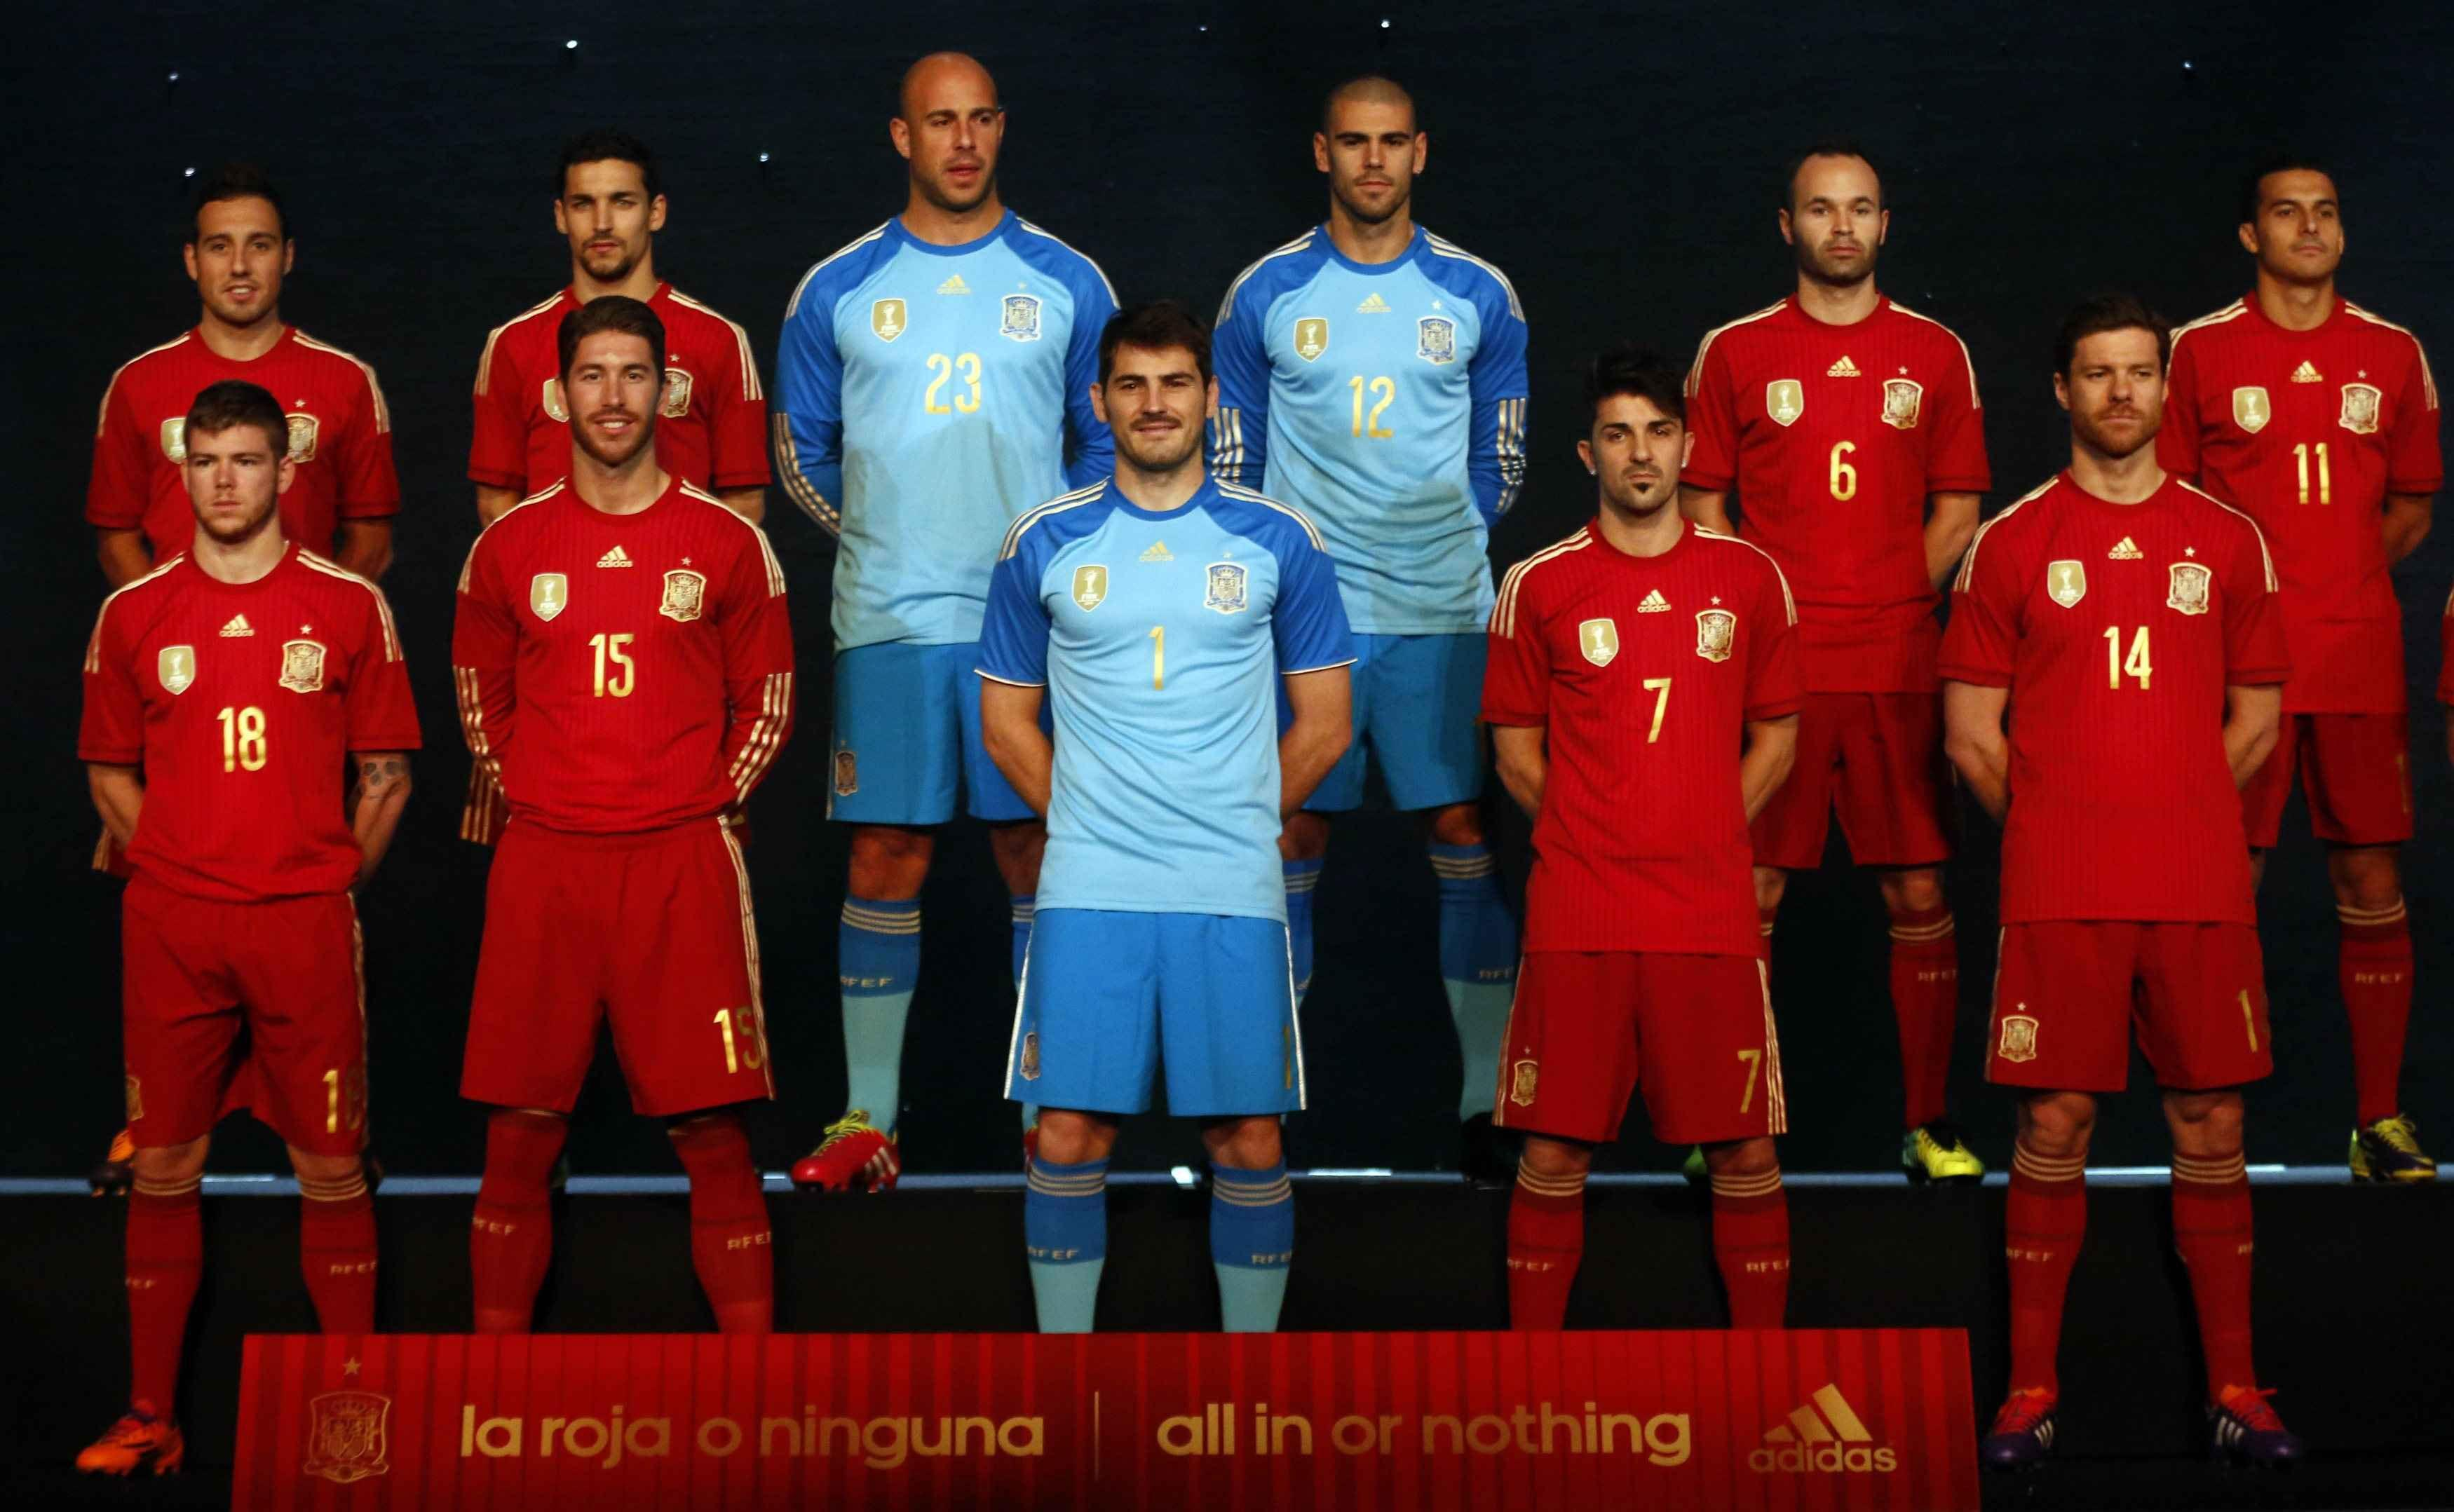 Spain National Team Wallpapers 2016 3500x2157